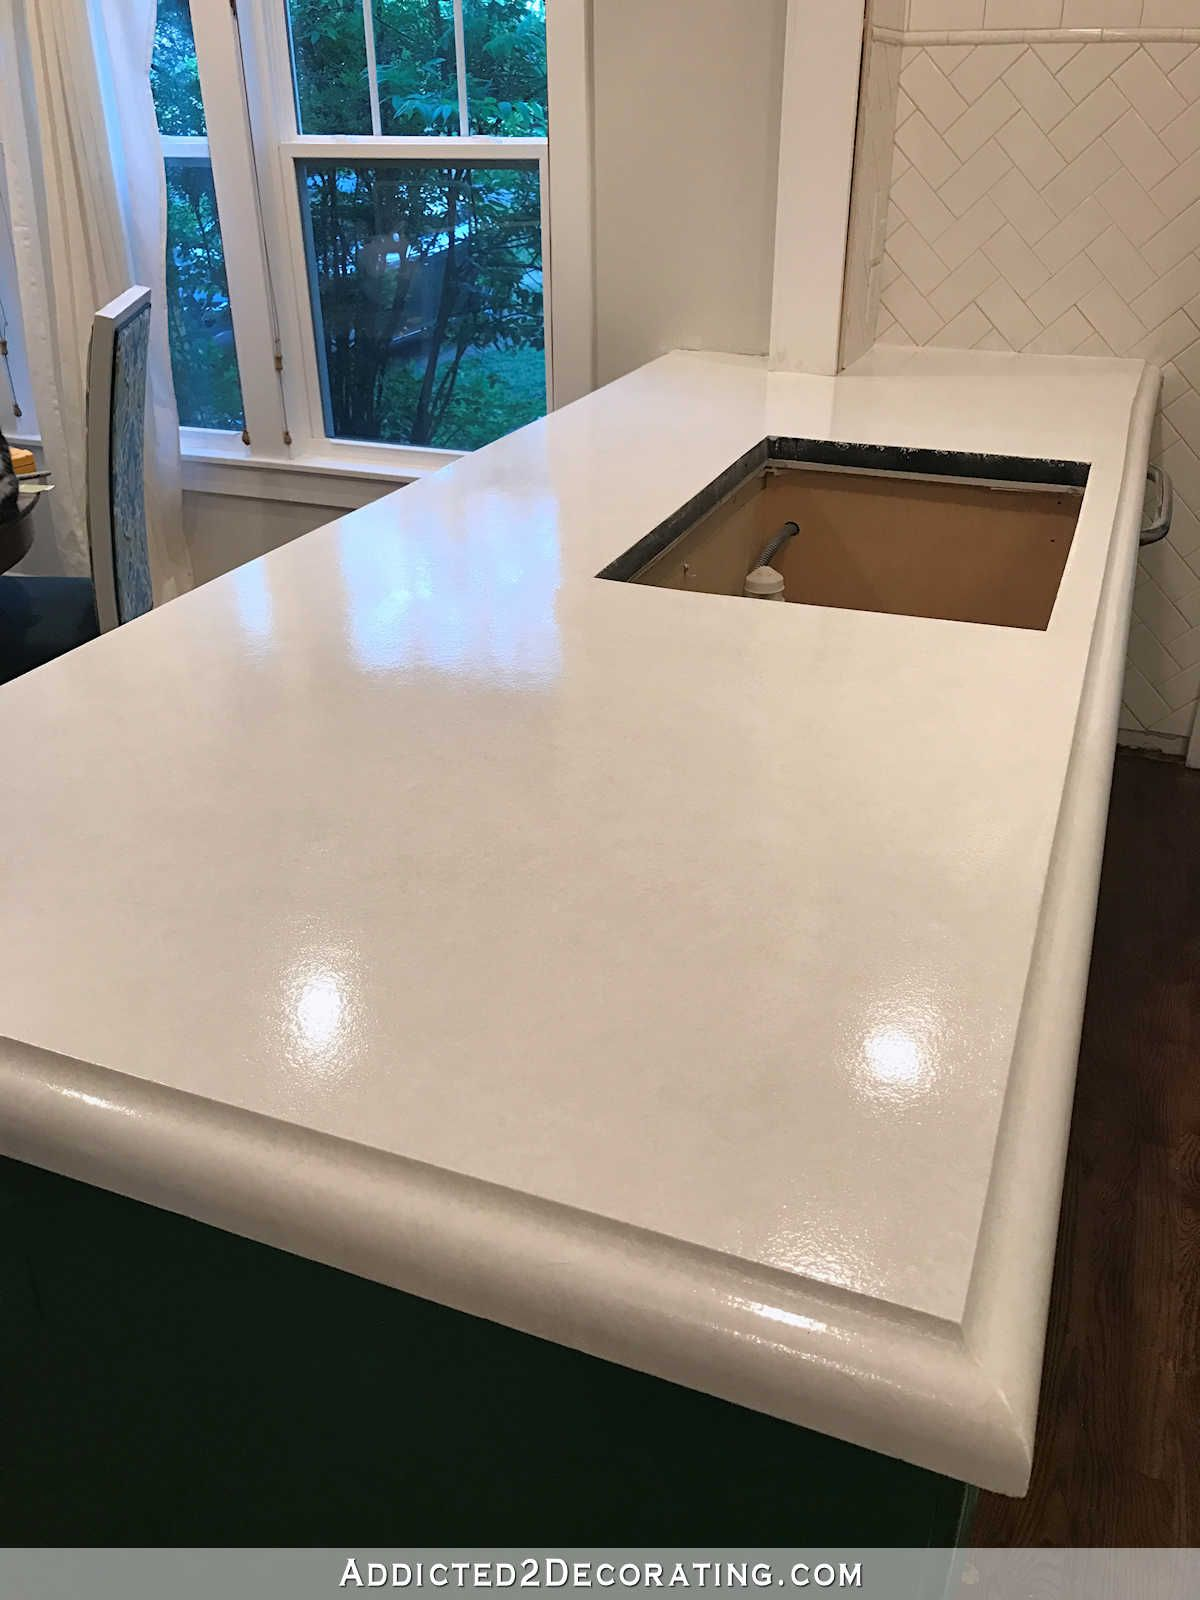 Refinishing Concrete Countertops Part 3 Of 3 Concrete